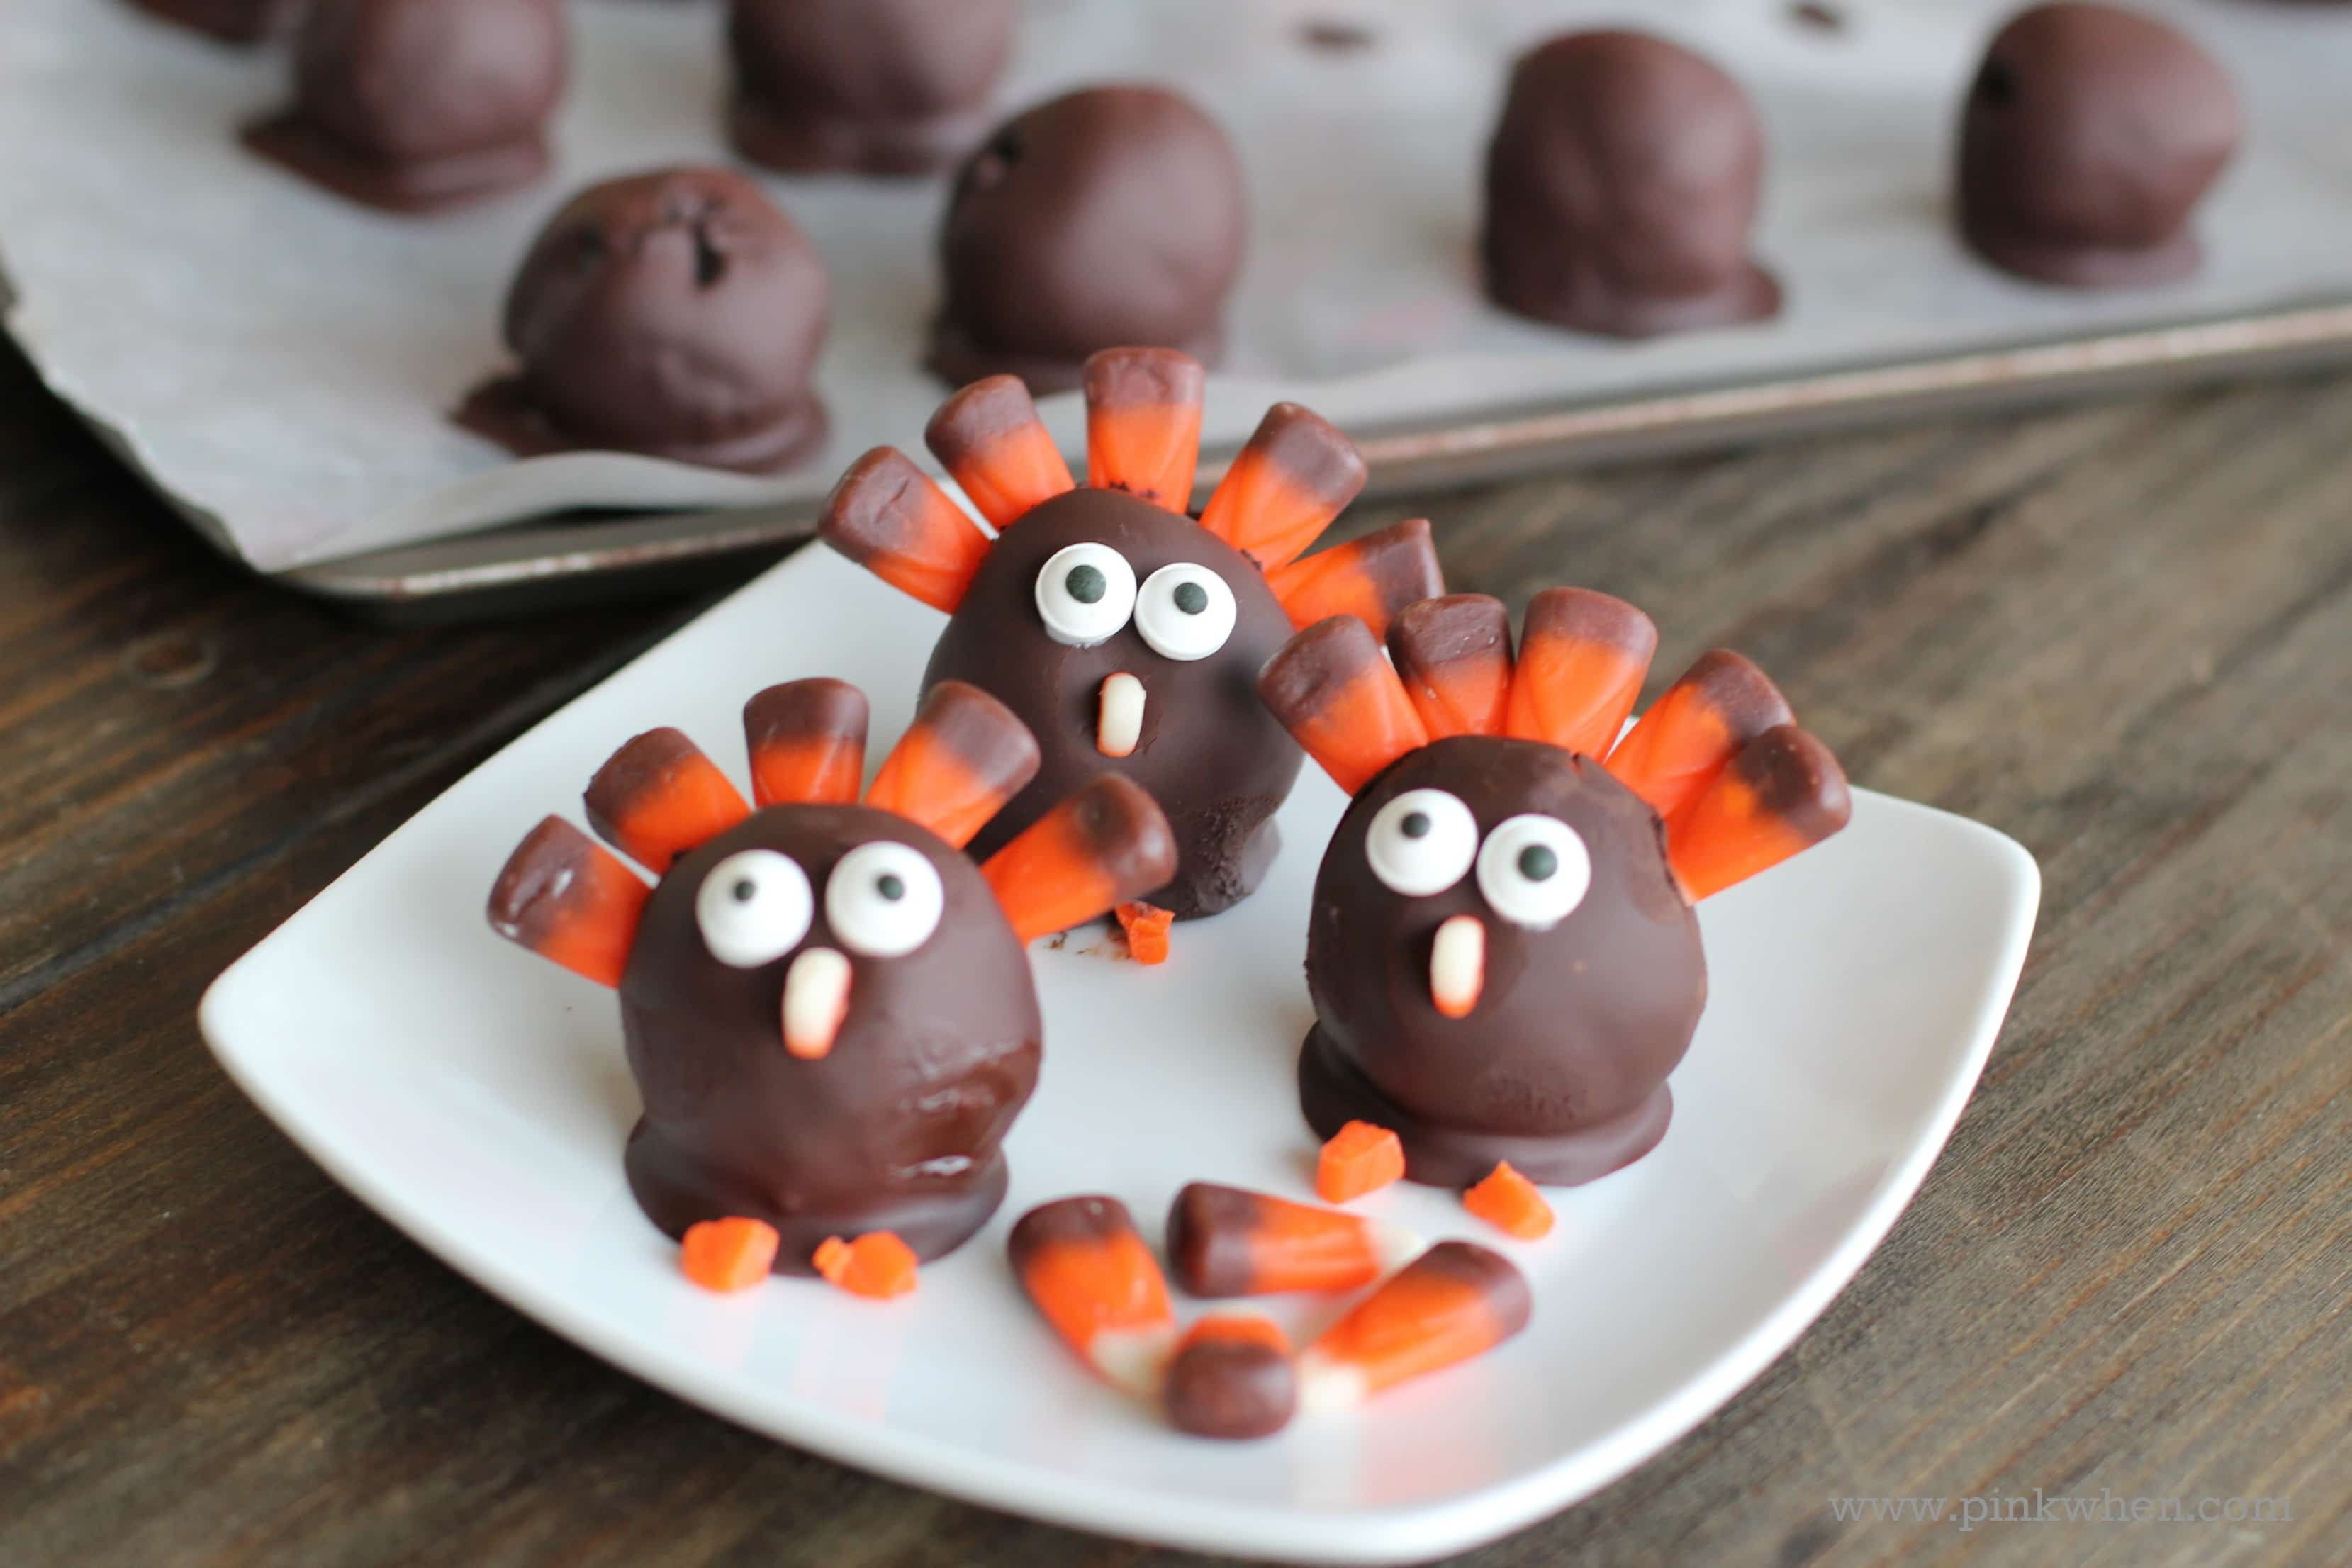 OREO Cookie Balls - Thanksgiving Turkey - #OREOCookieBalls #CollectiveBias #shop